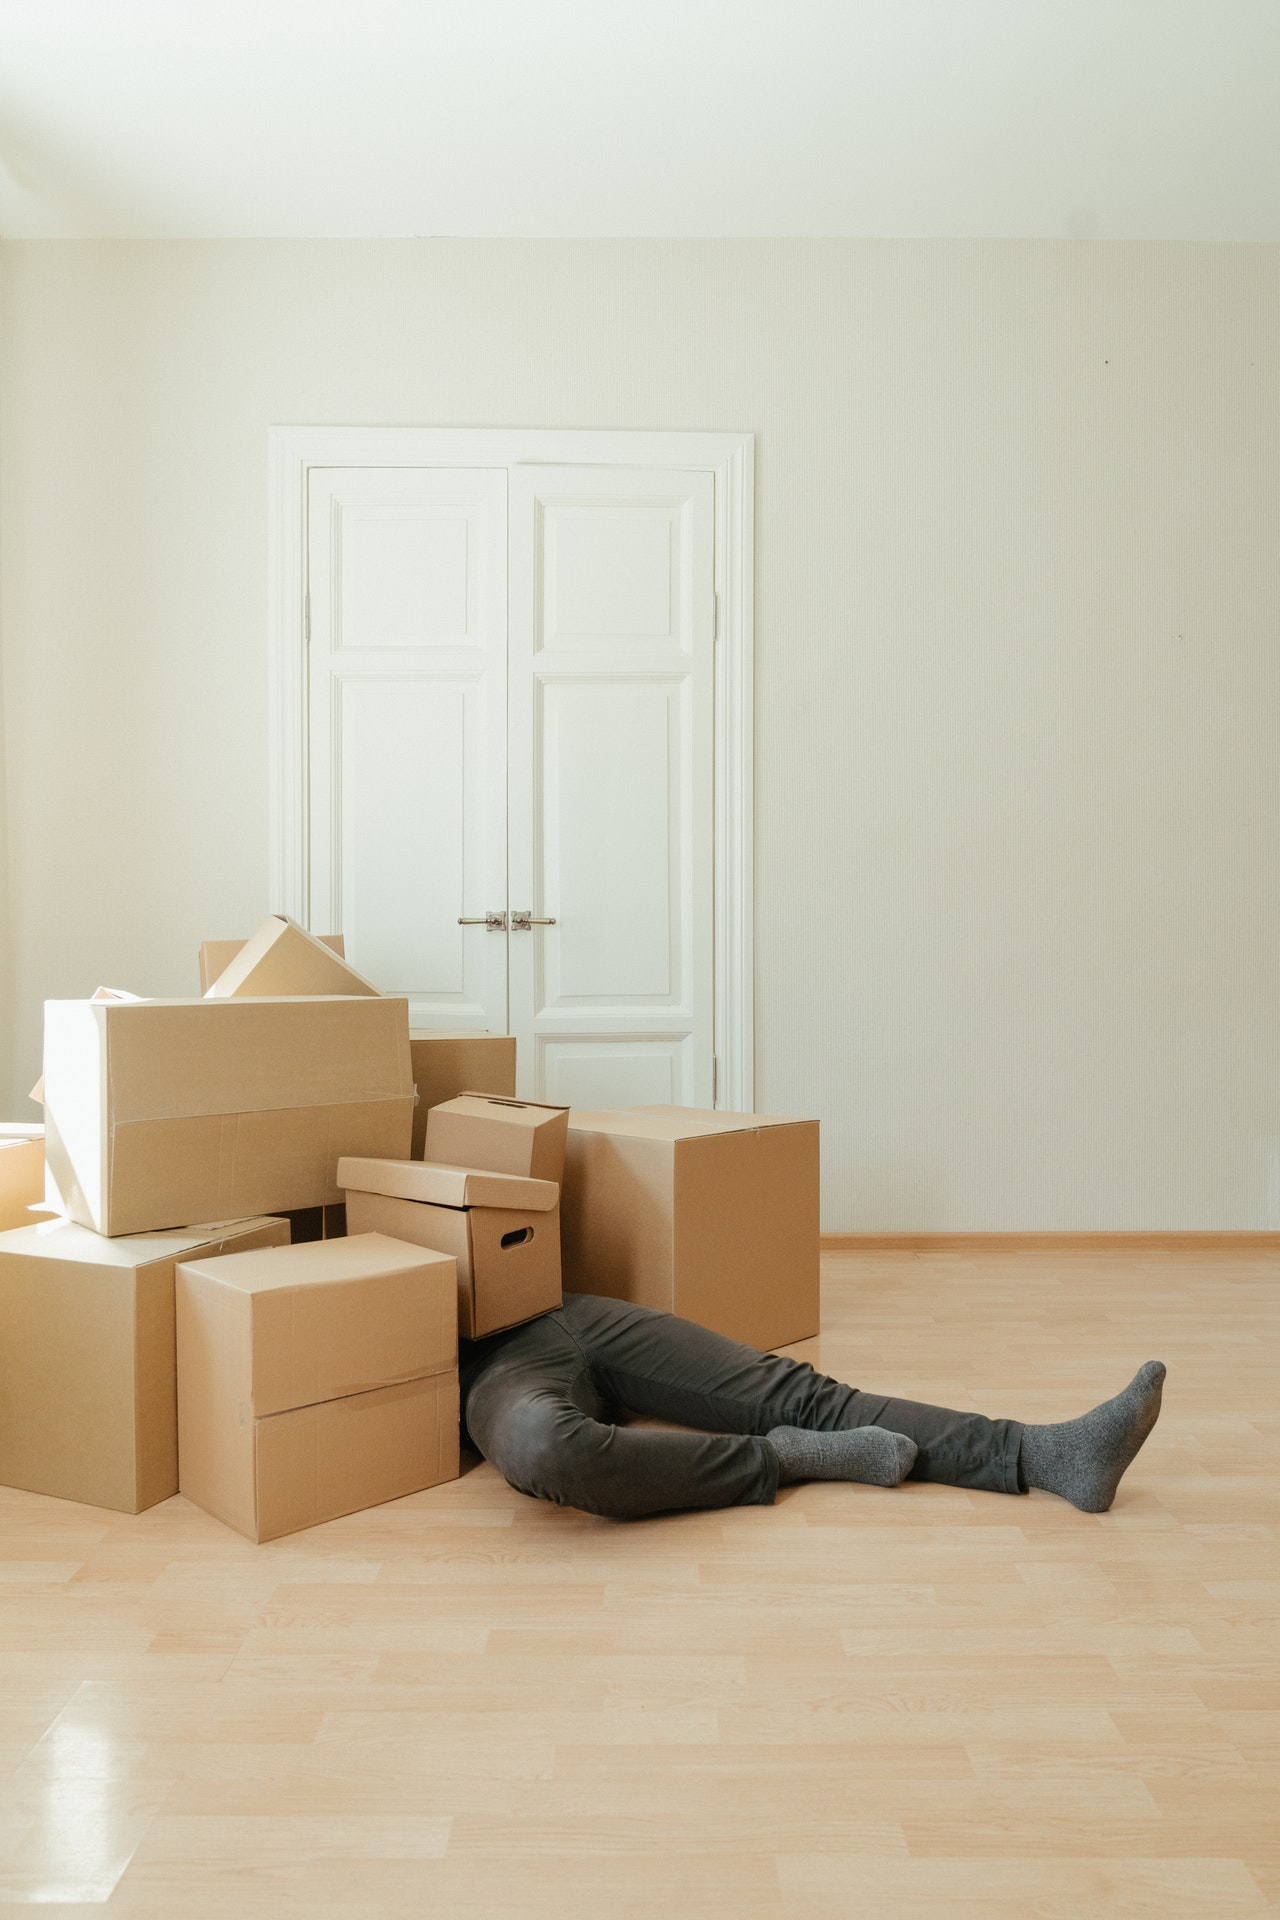 moving and de-cluttering is stressful, but is better with a professional move manager and NAPO organizer